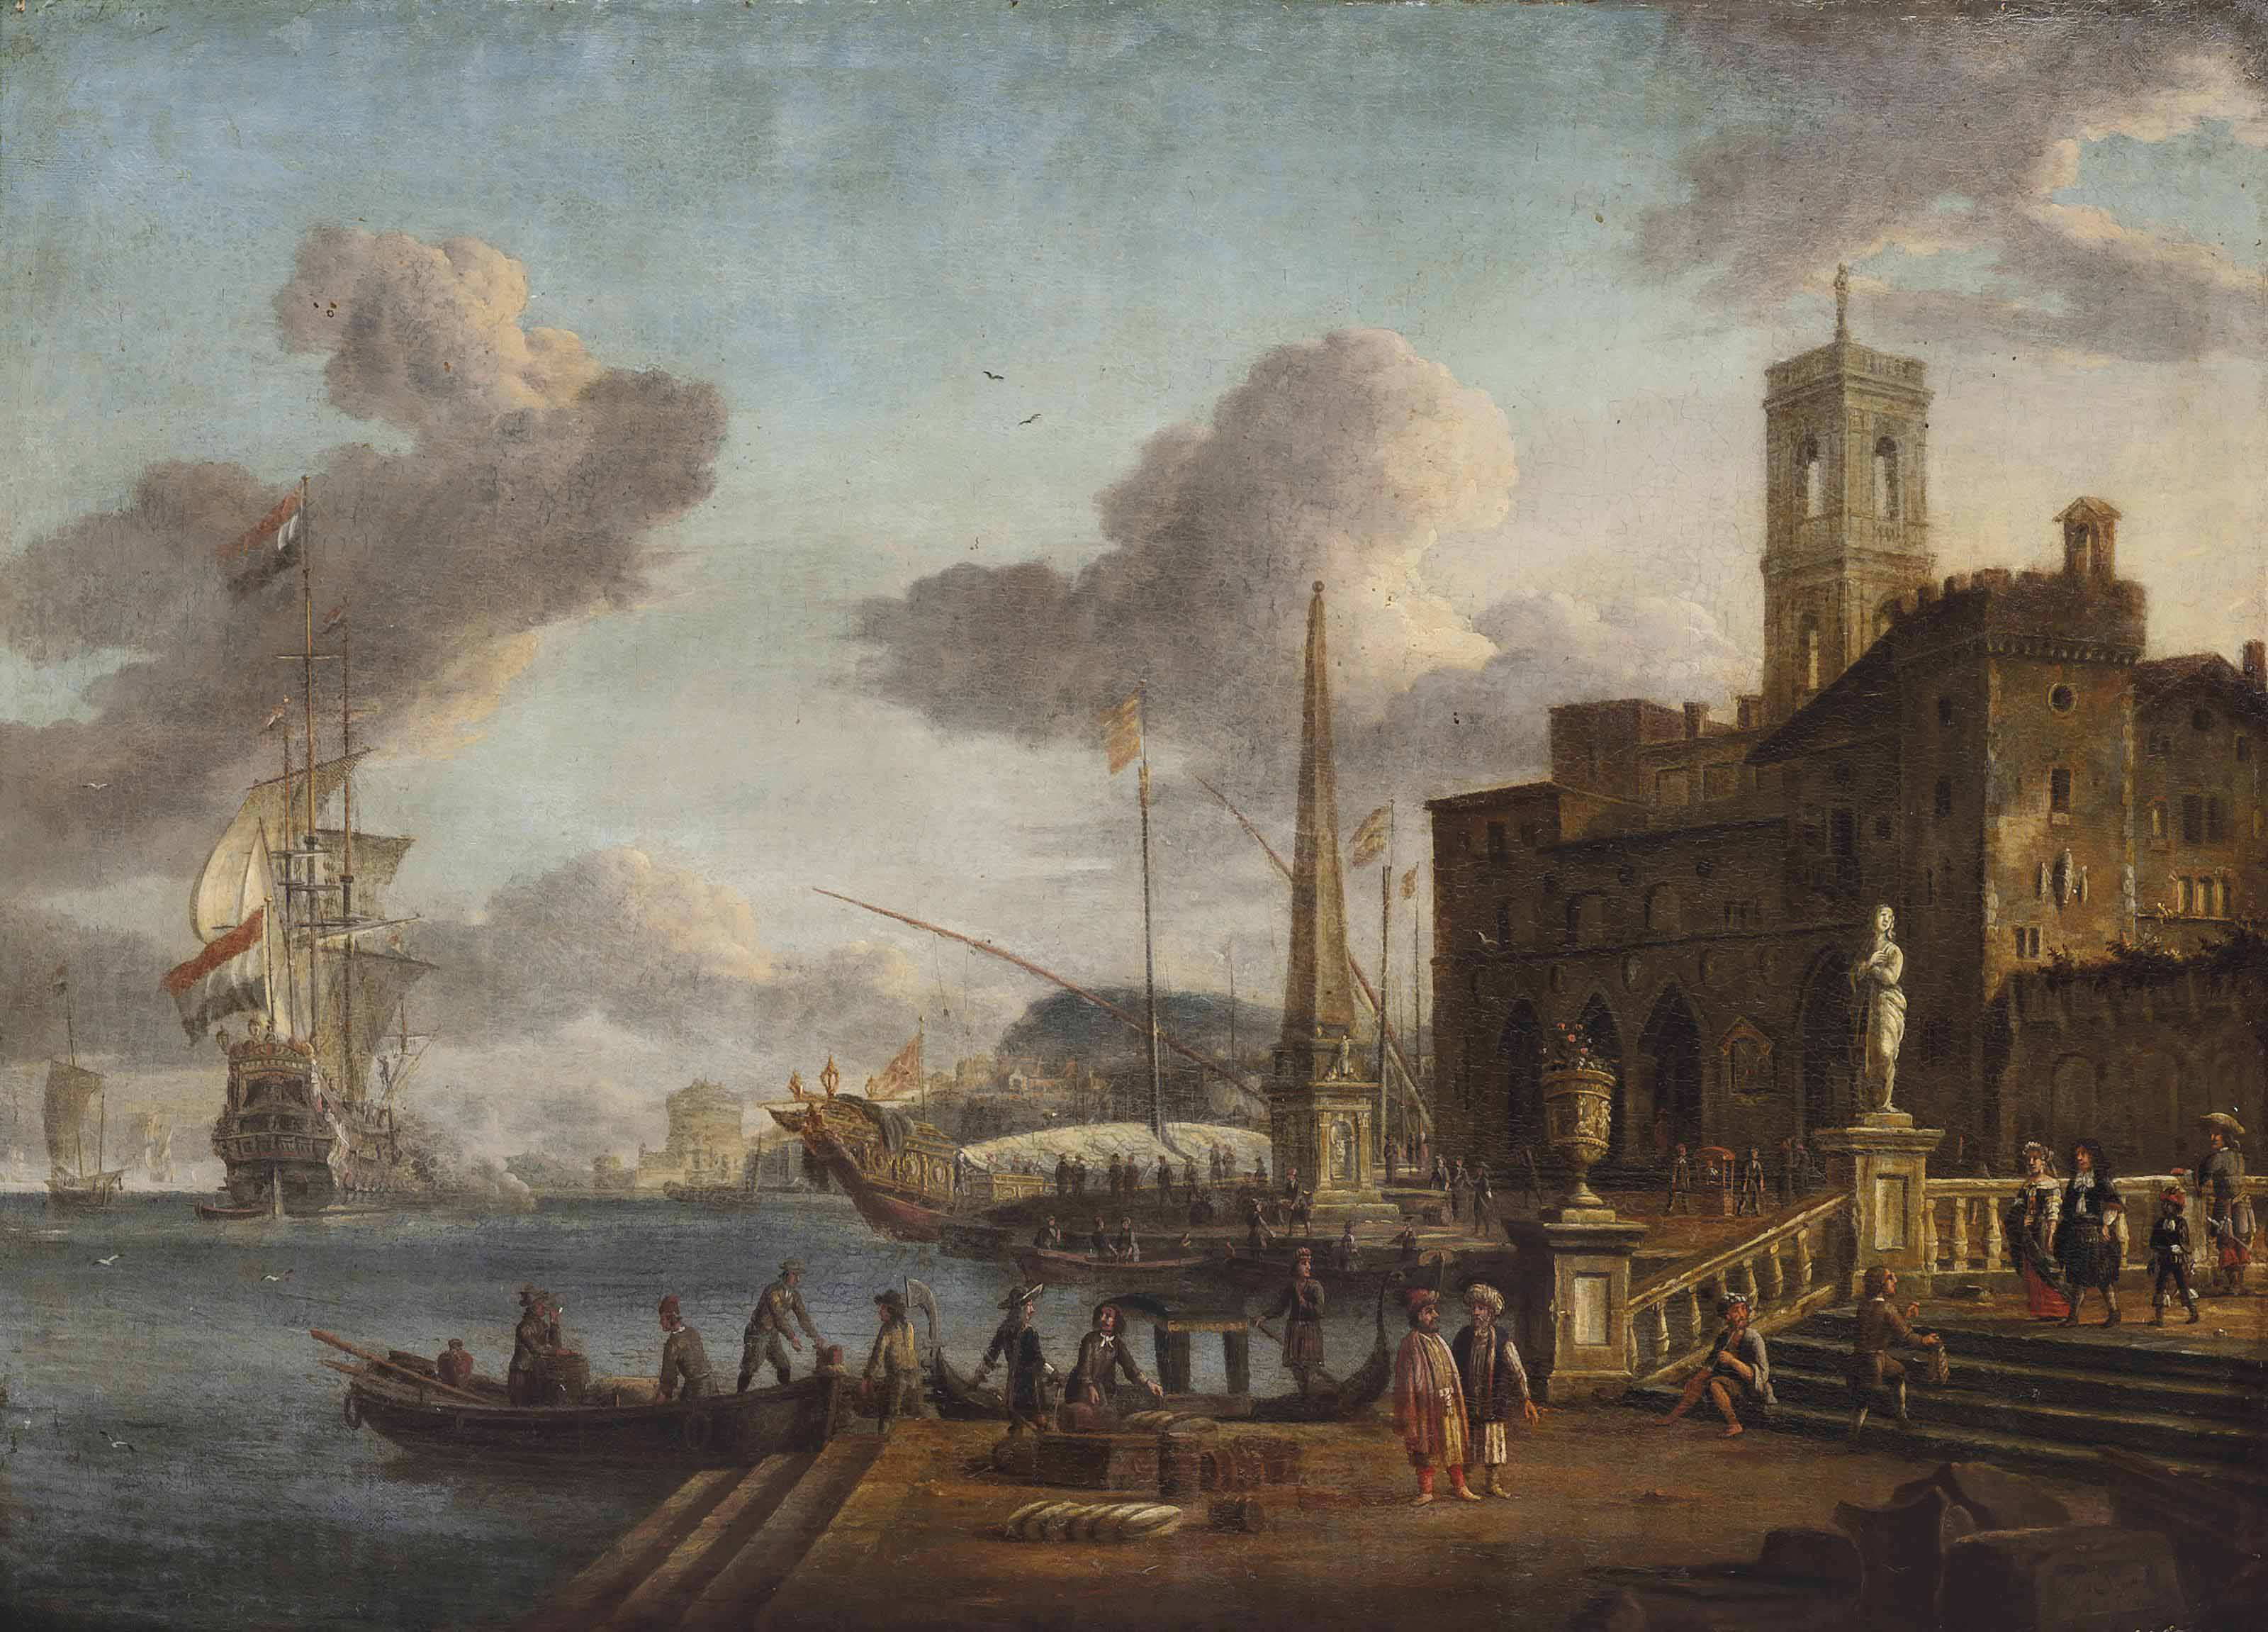 A Mediterranean harbour scene with figures in Oriental dress, shipping beyond